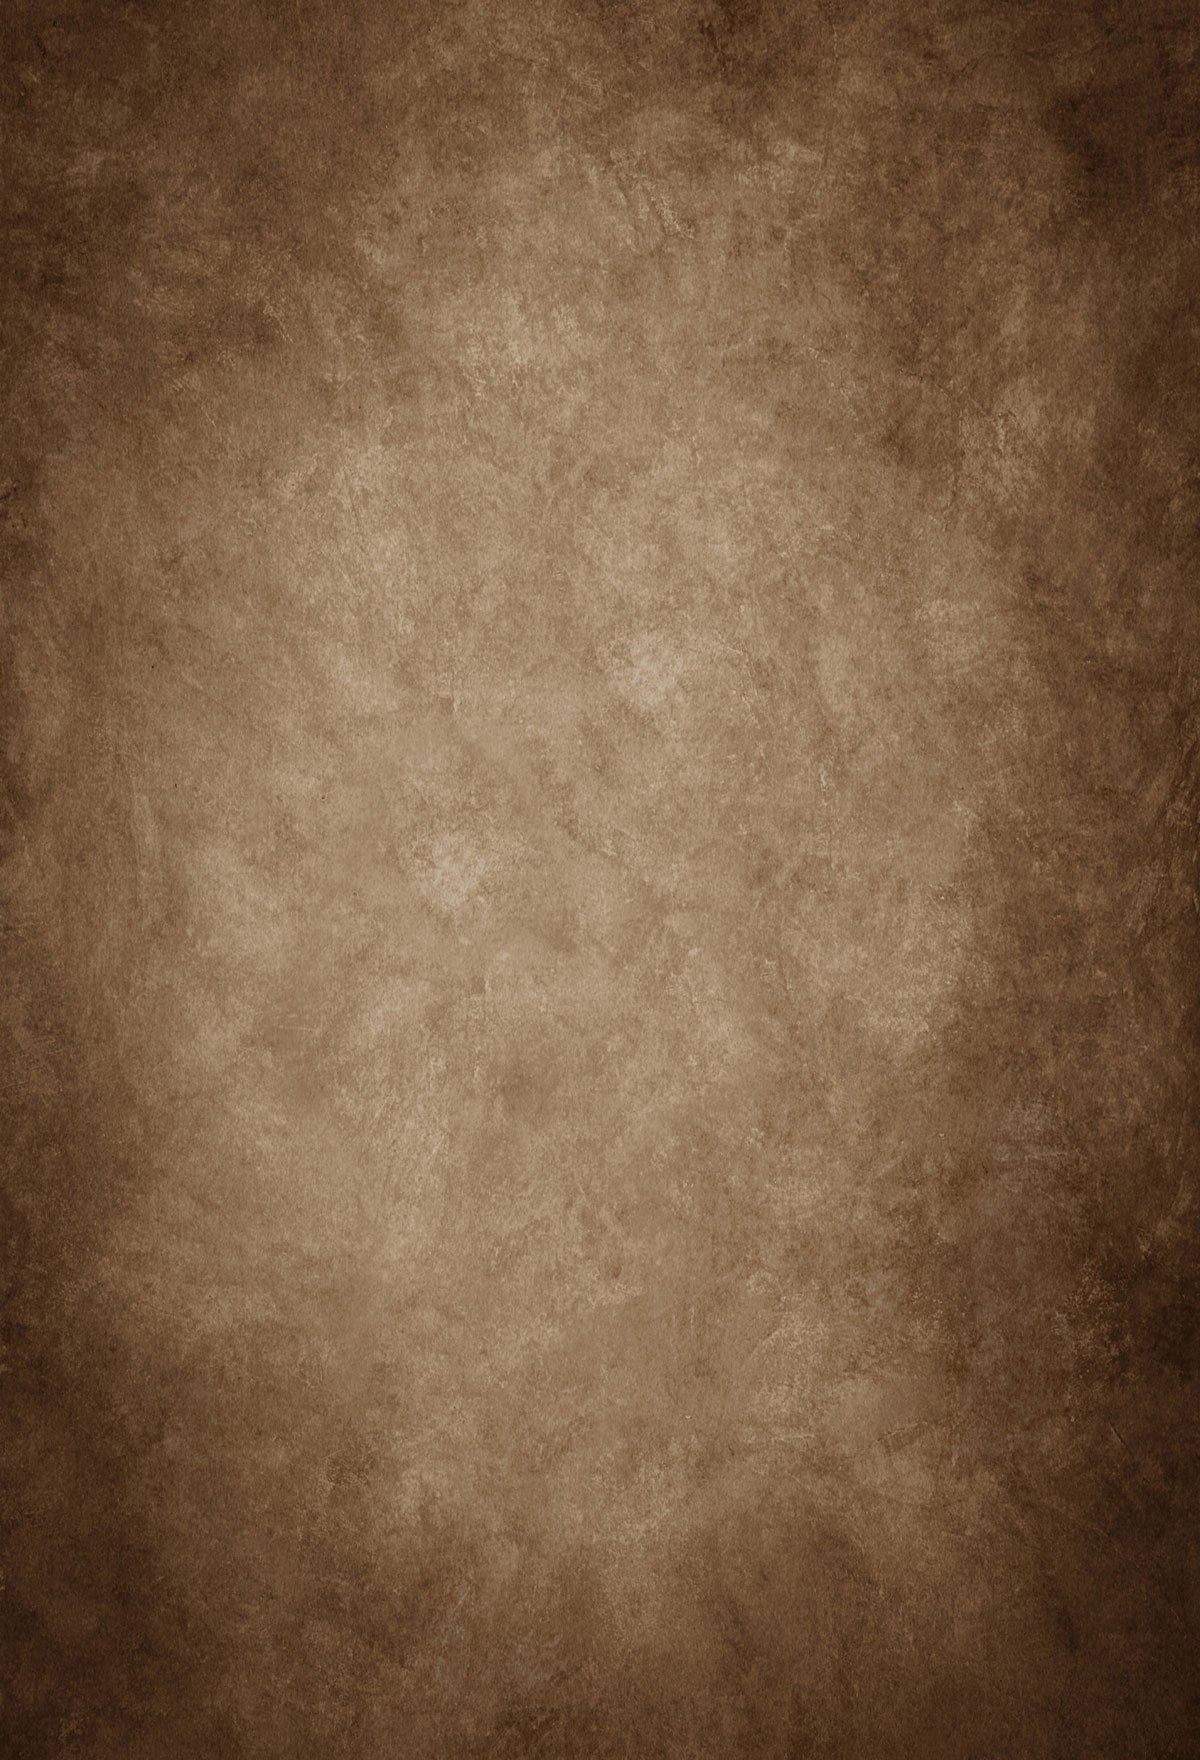 Load image into Gallery viewer, Kate Abstract Texture Old Master Dark Brown Backdrop Photo Studio - Kate backdrops UK